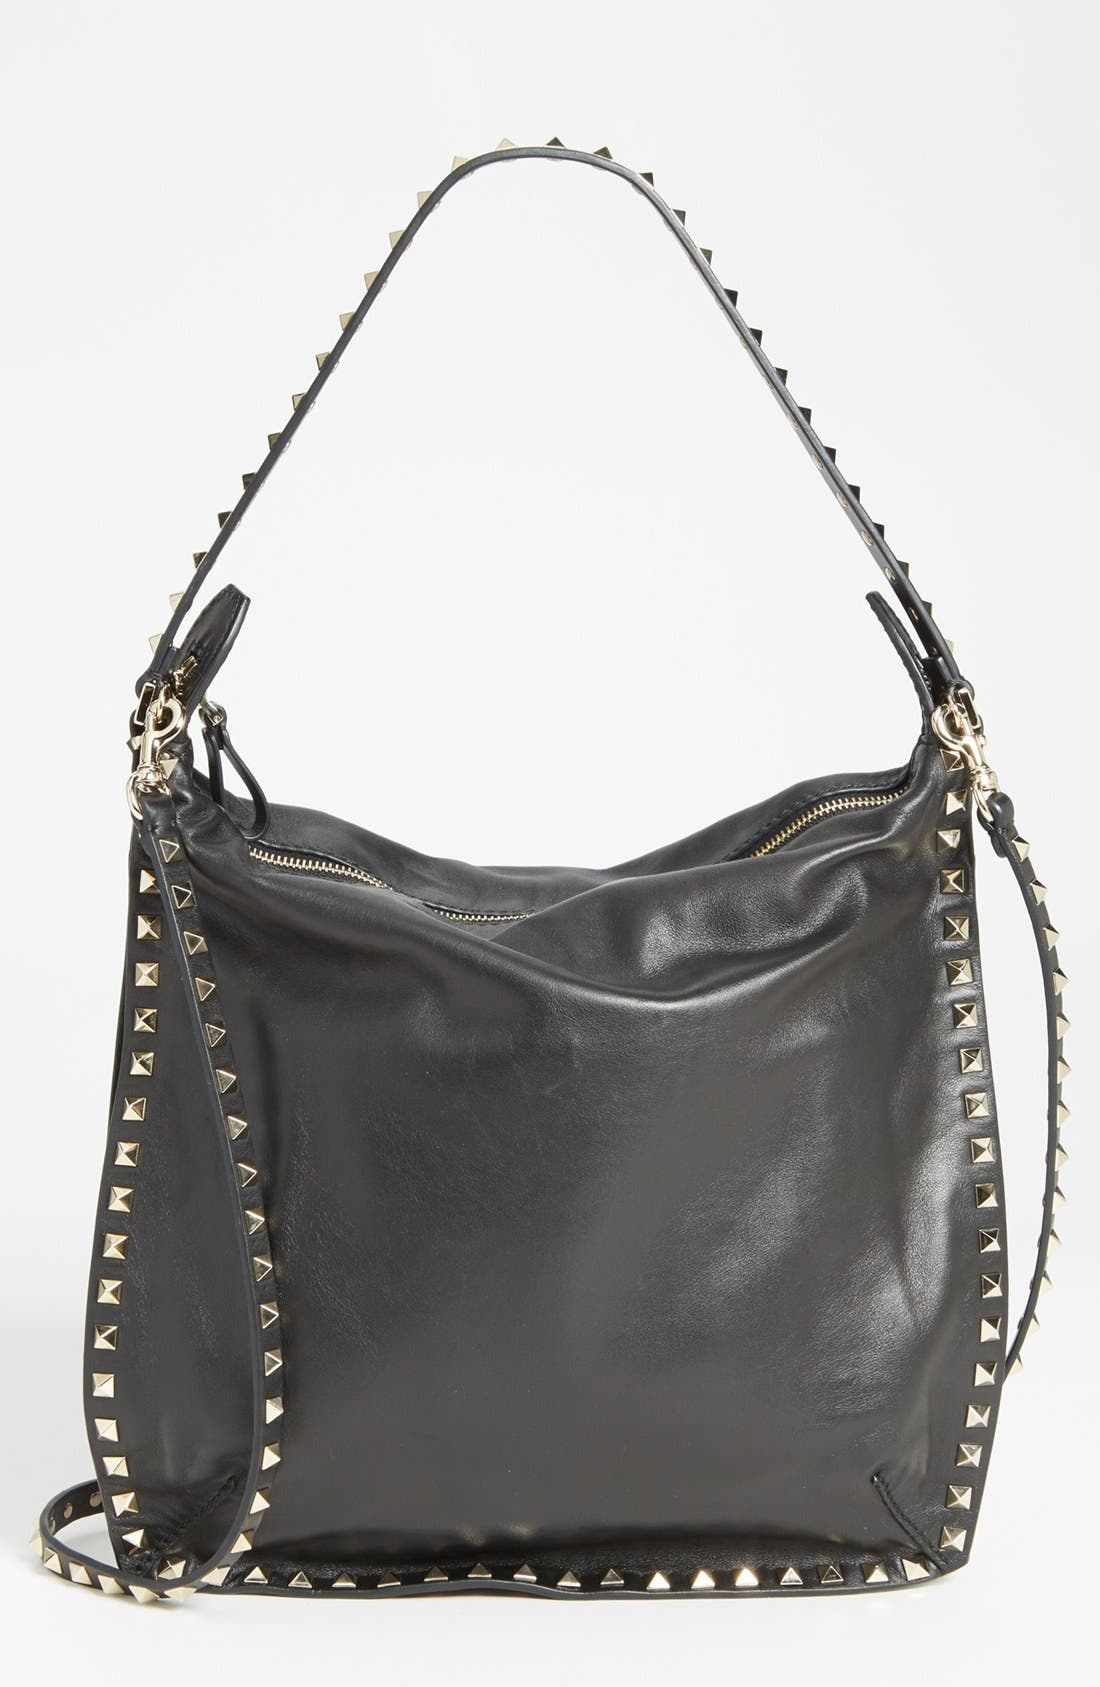 Alternate Image 1 Selected - Valentino 'Small Rockstud' Leather Hobo